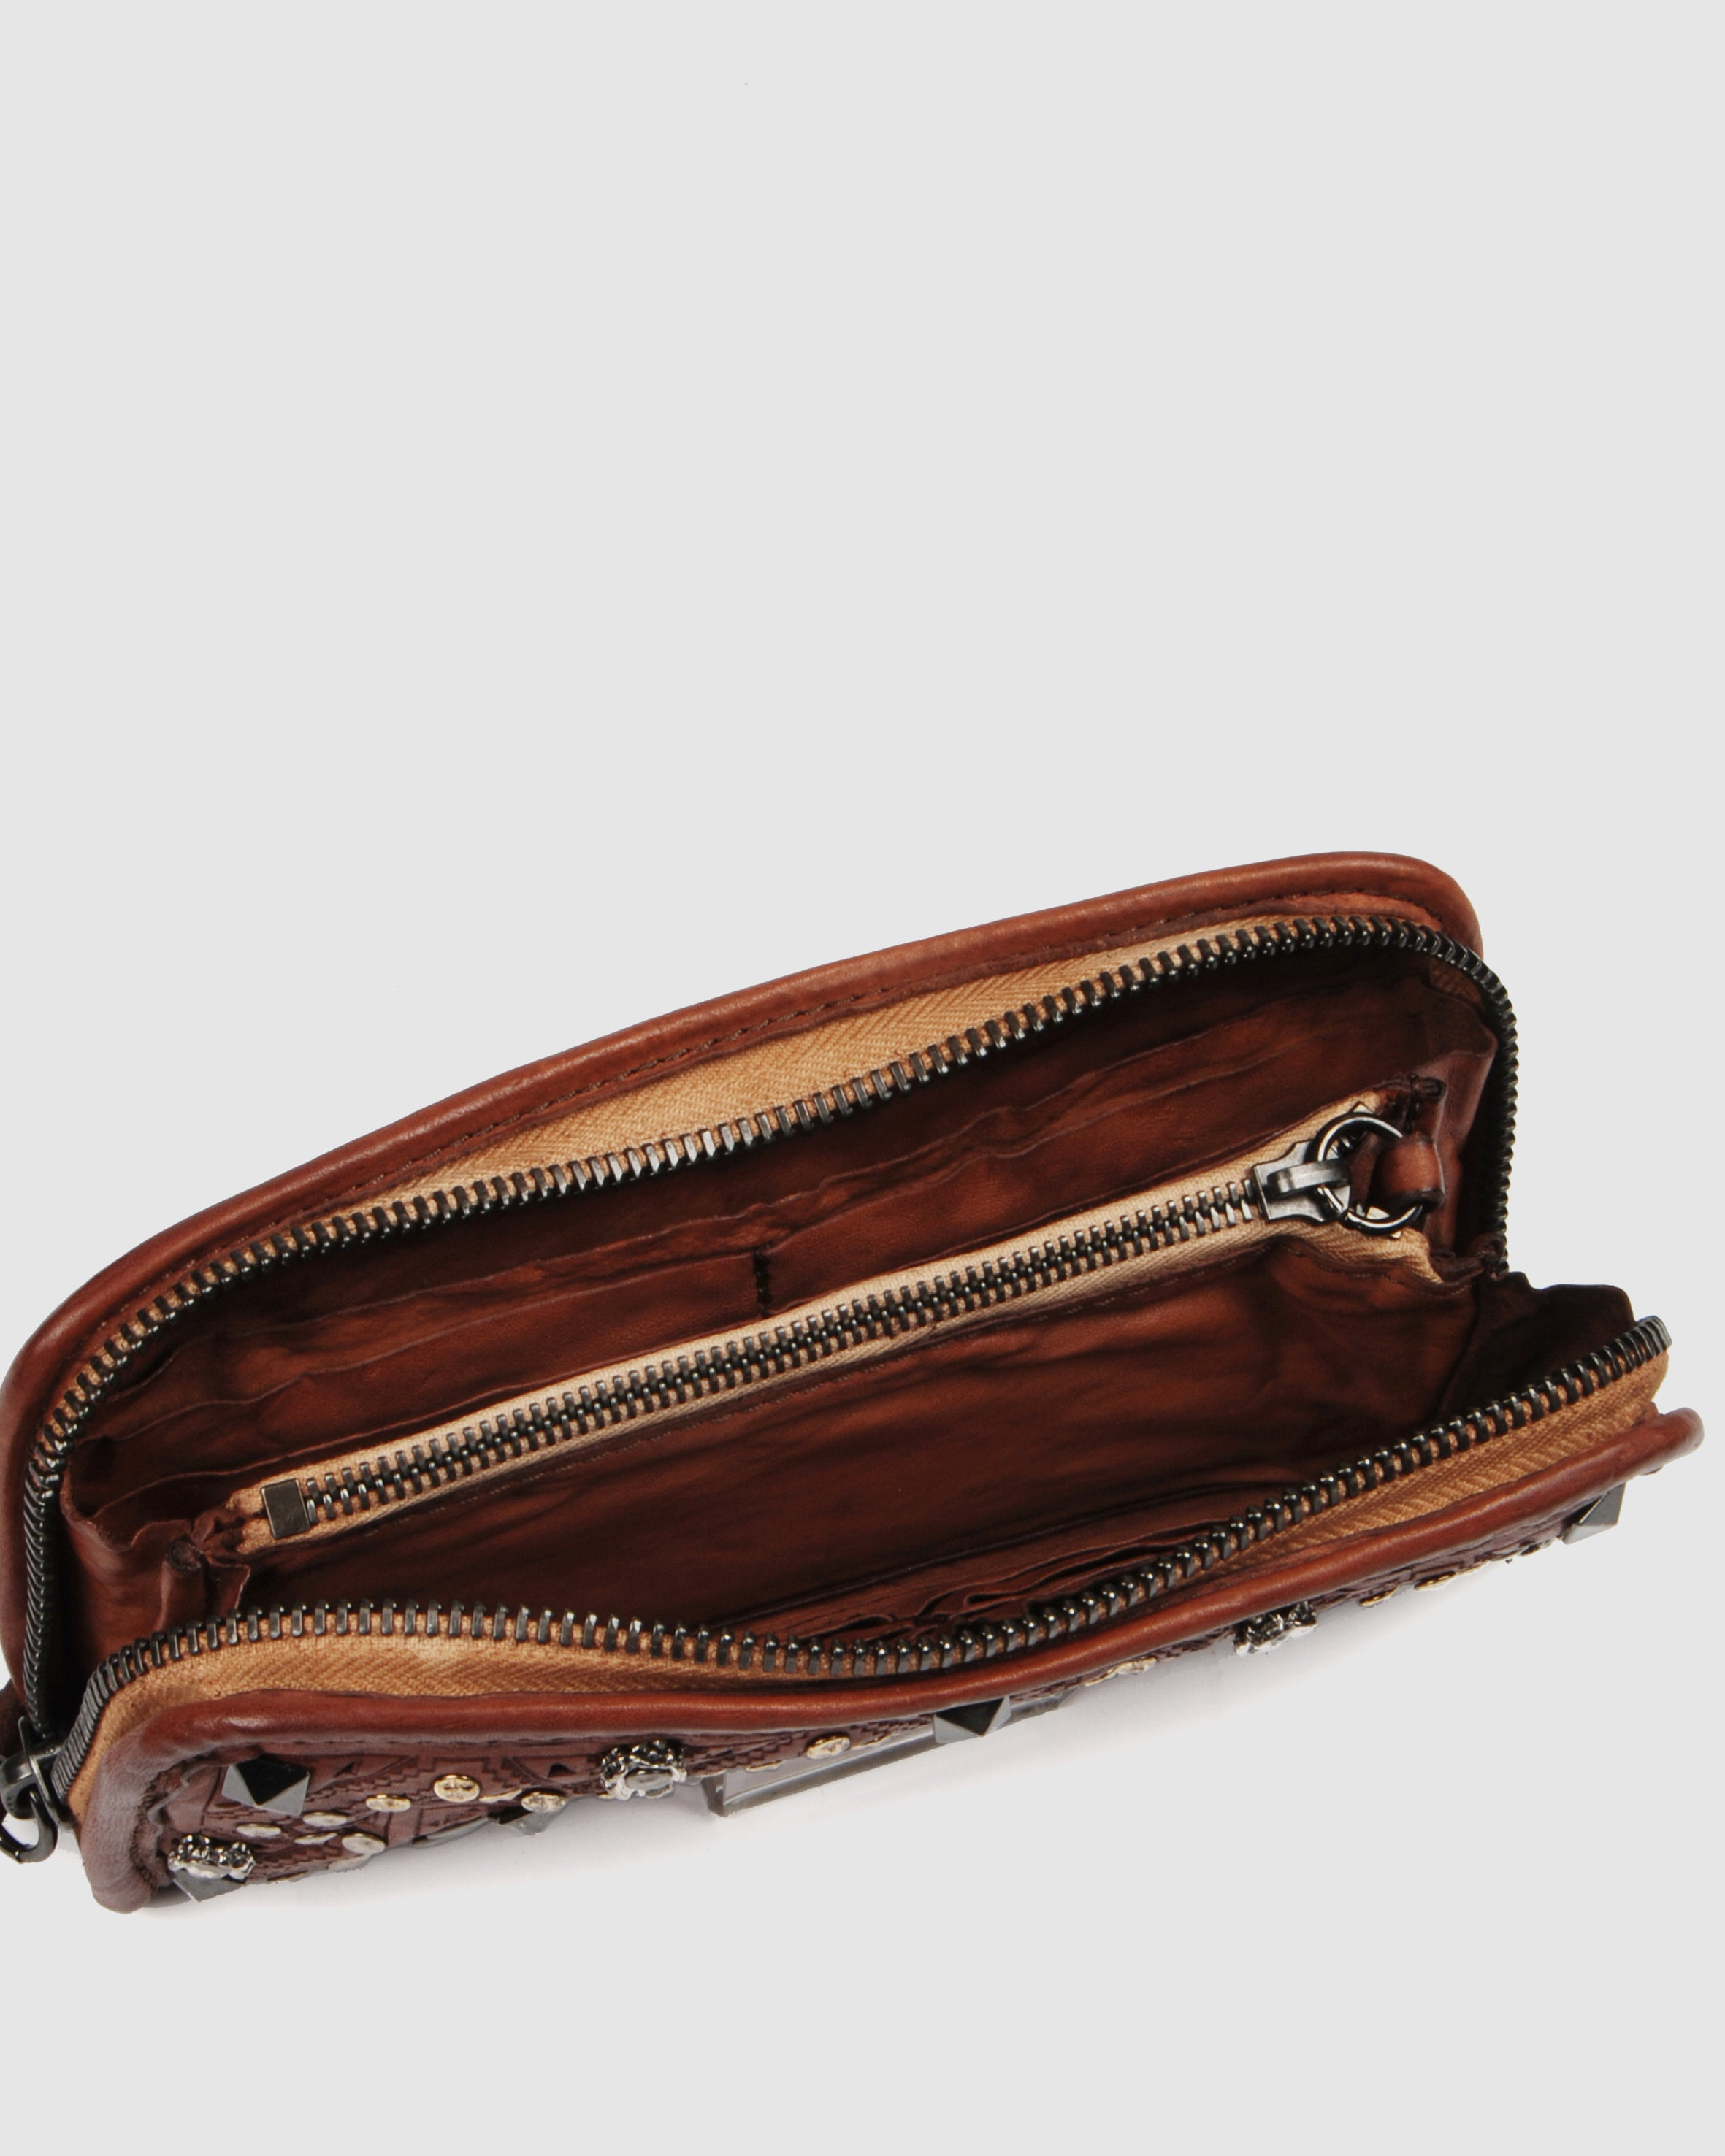 CAMPOMAGGI BEECHWOOD WALLET COGNAC LEATHER